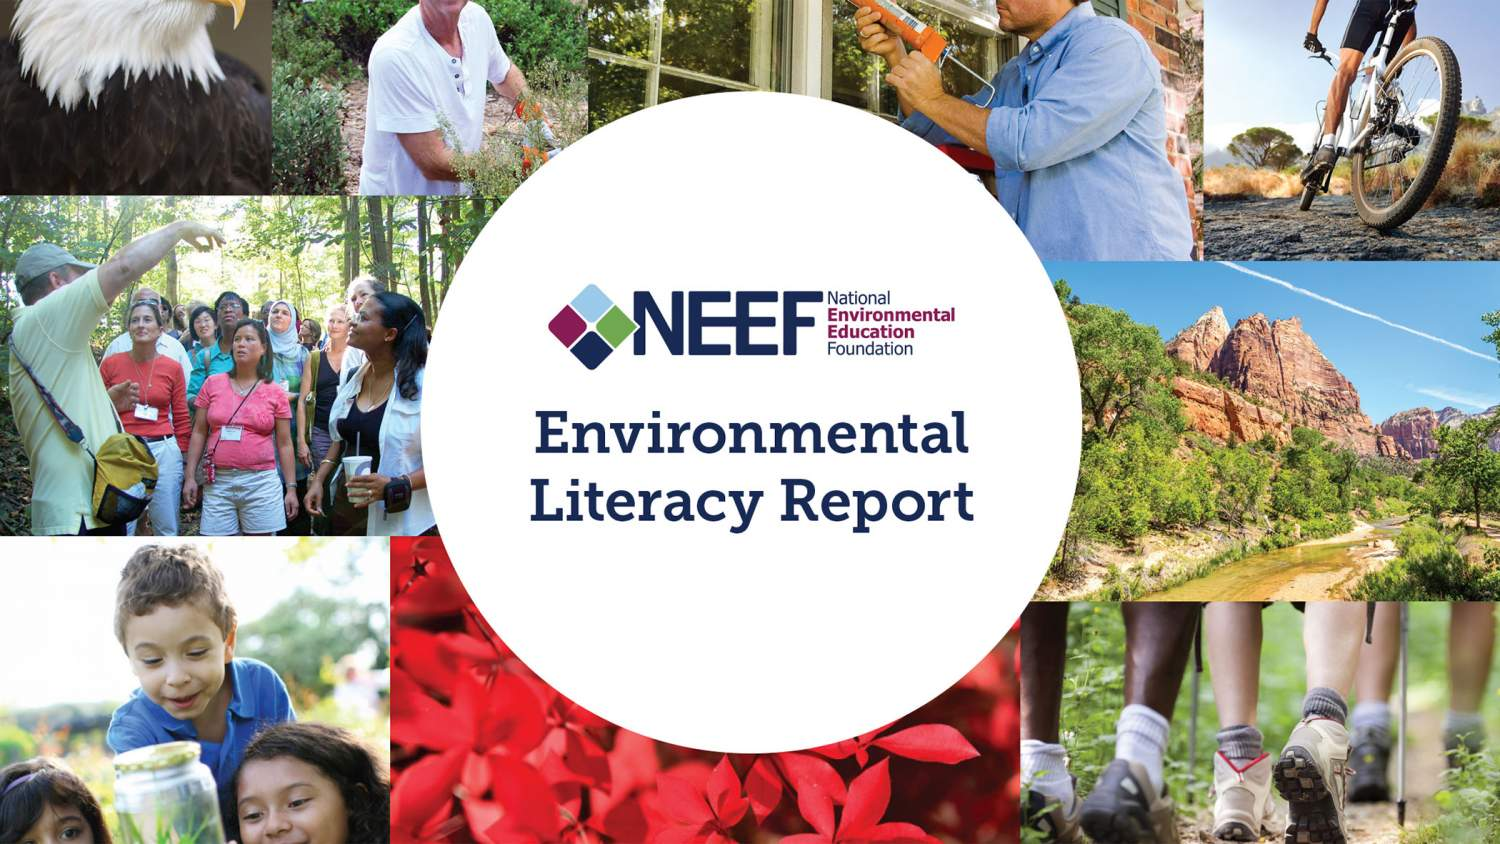 NEEF Environmental Literacy Report